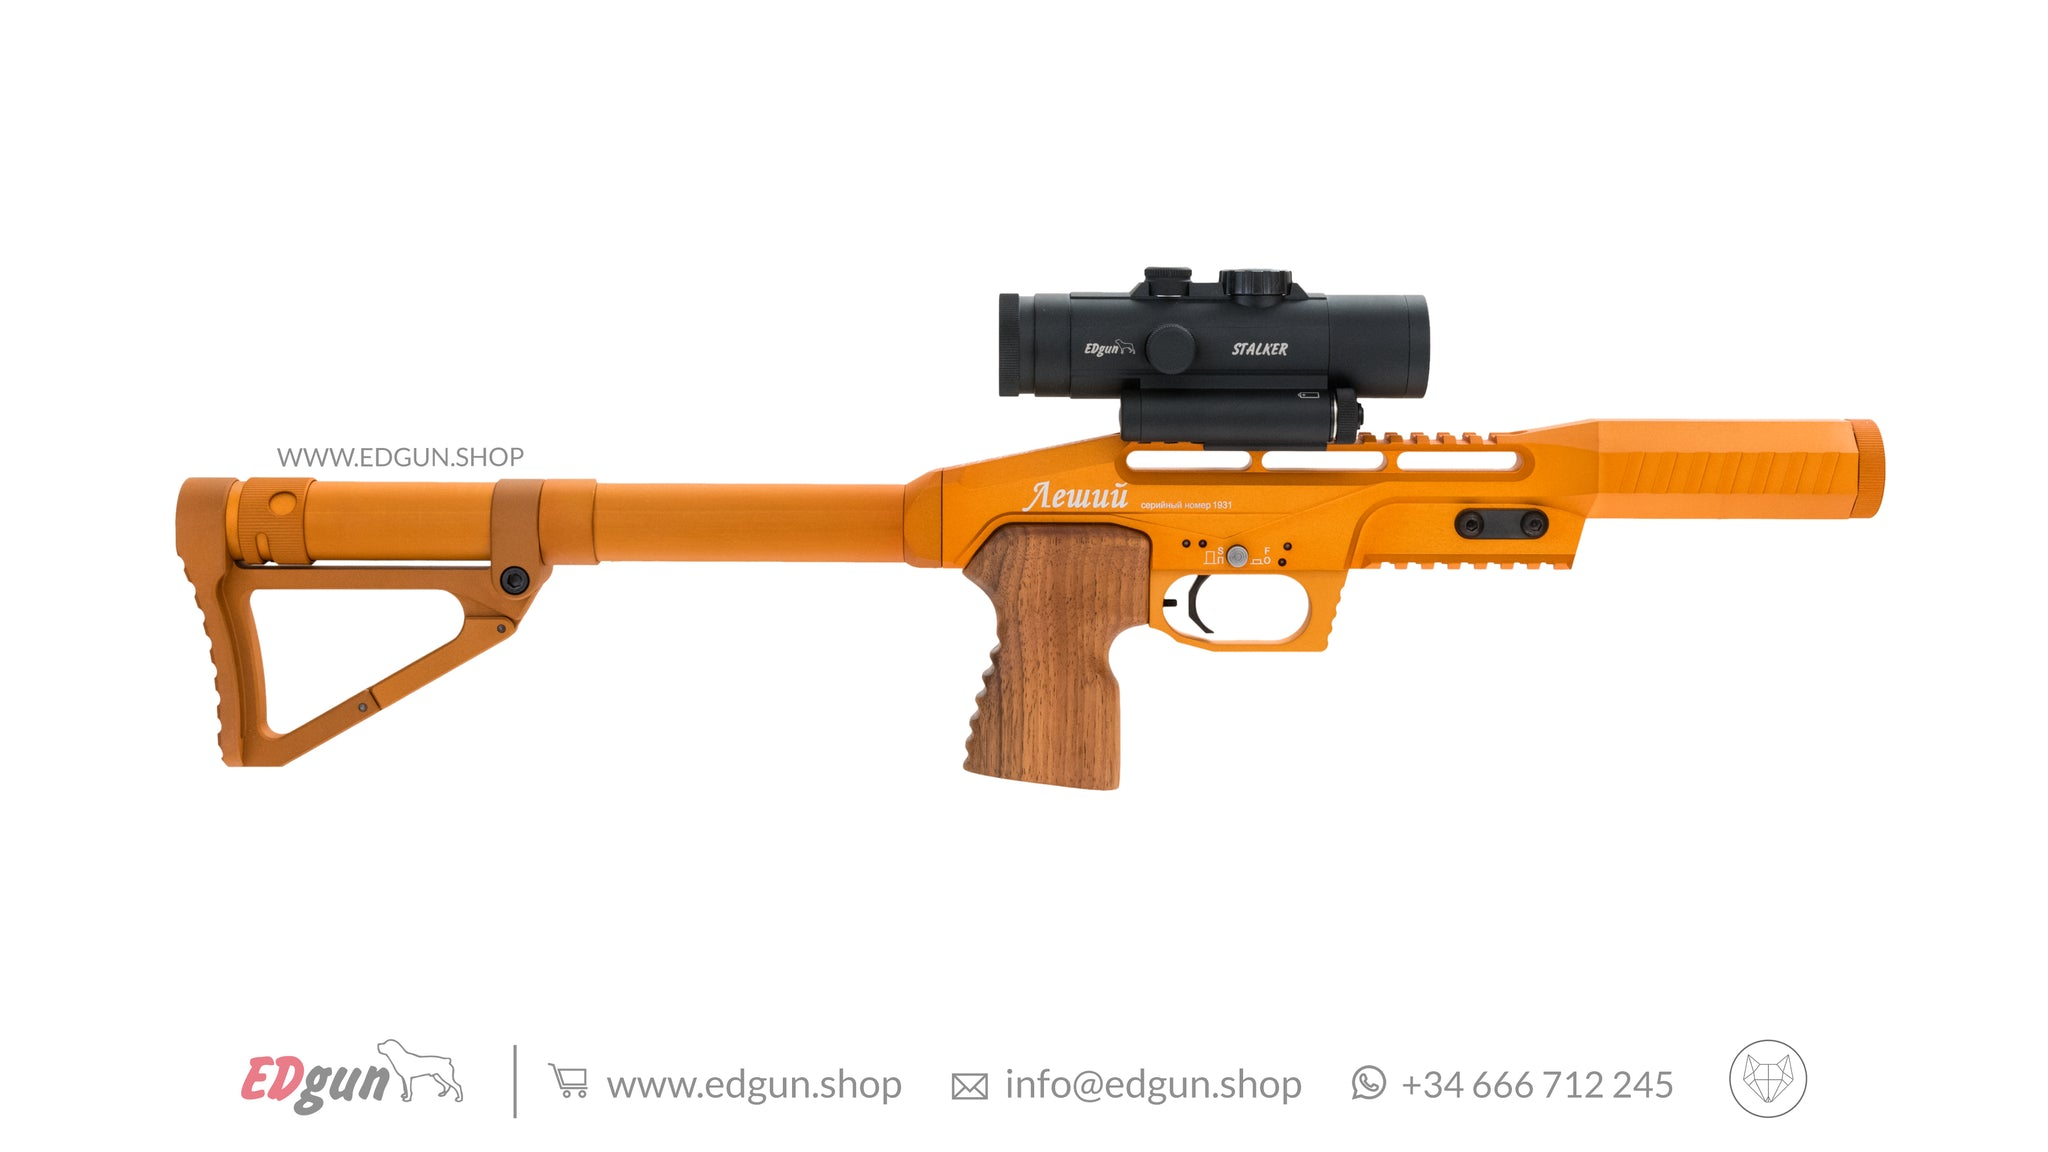 EDgun Leshiy <br>Special Edition: Copper